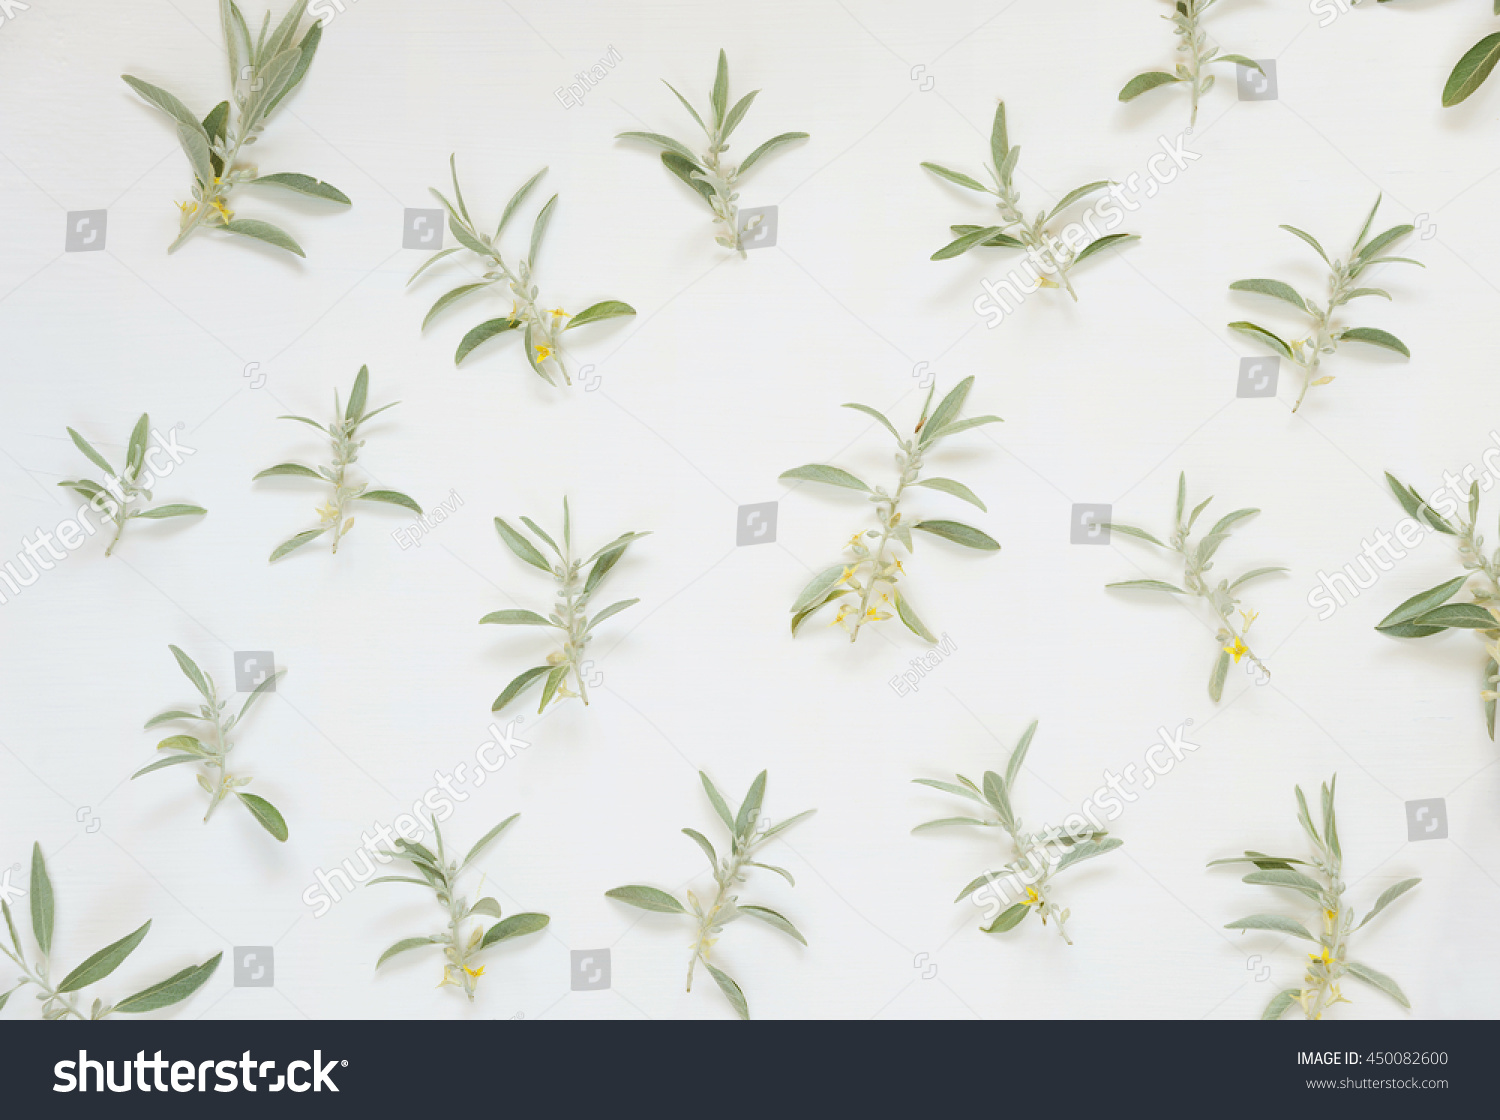 Natural Frame Light Green Leaves Of Elaeagnus Commutata With Small